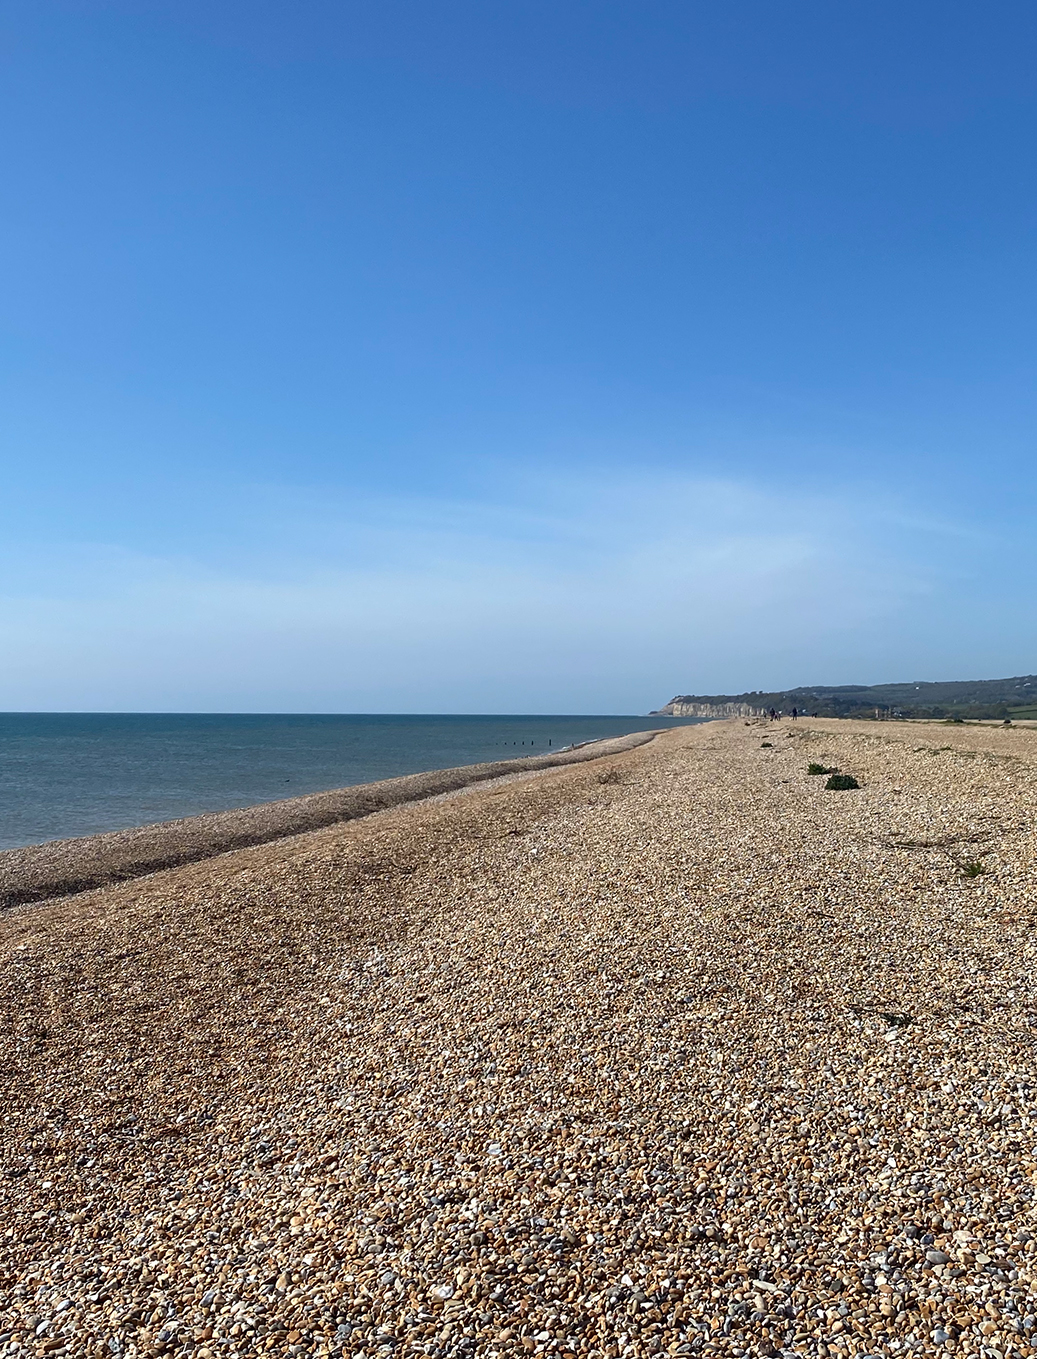 The blue sky and pebbled beach at Winchelsea